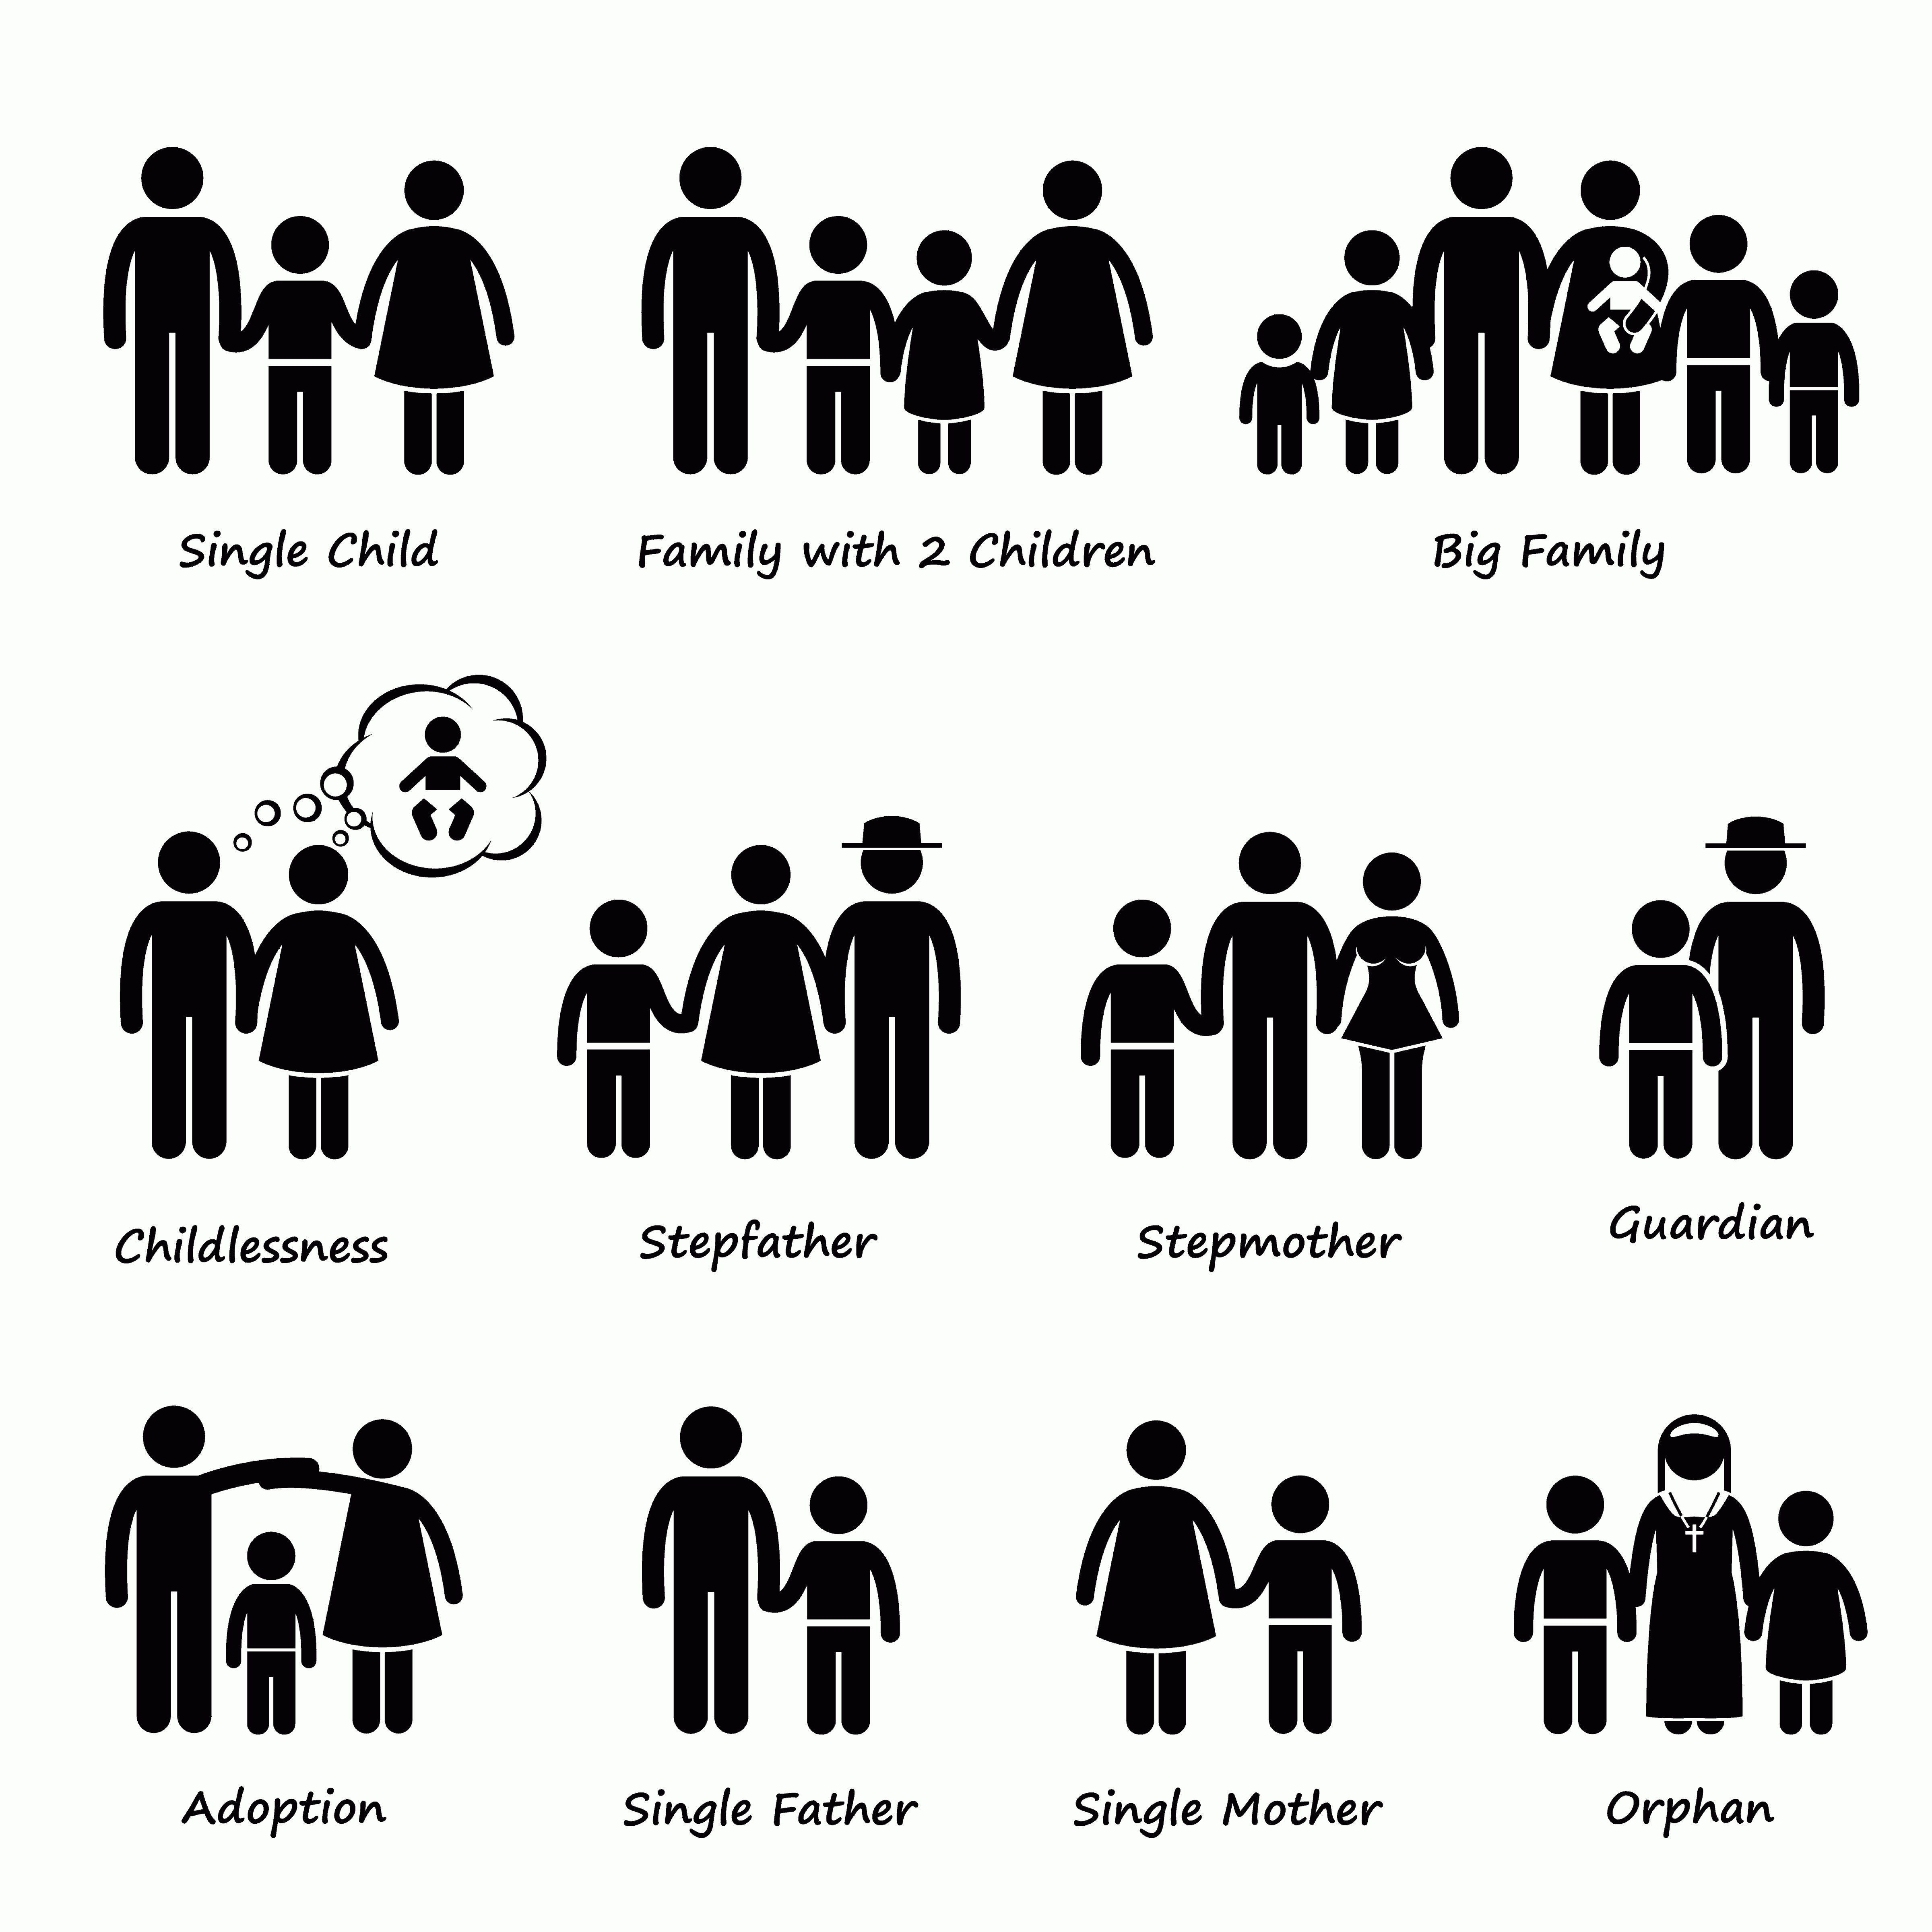 Stick Family Vector Art: Family Size And Type Of Relationship Stick Figure Pictogram Icon Cliparts